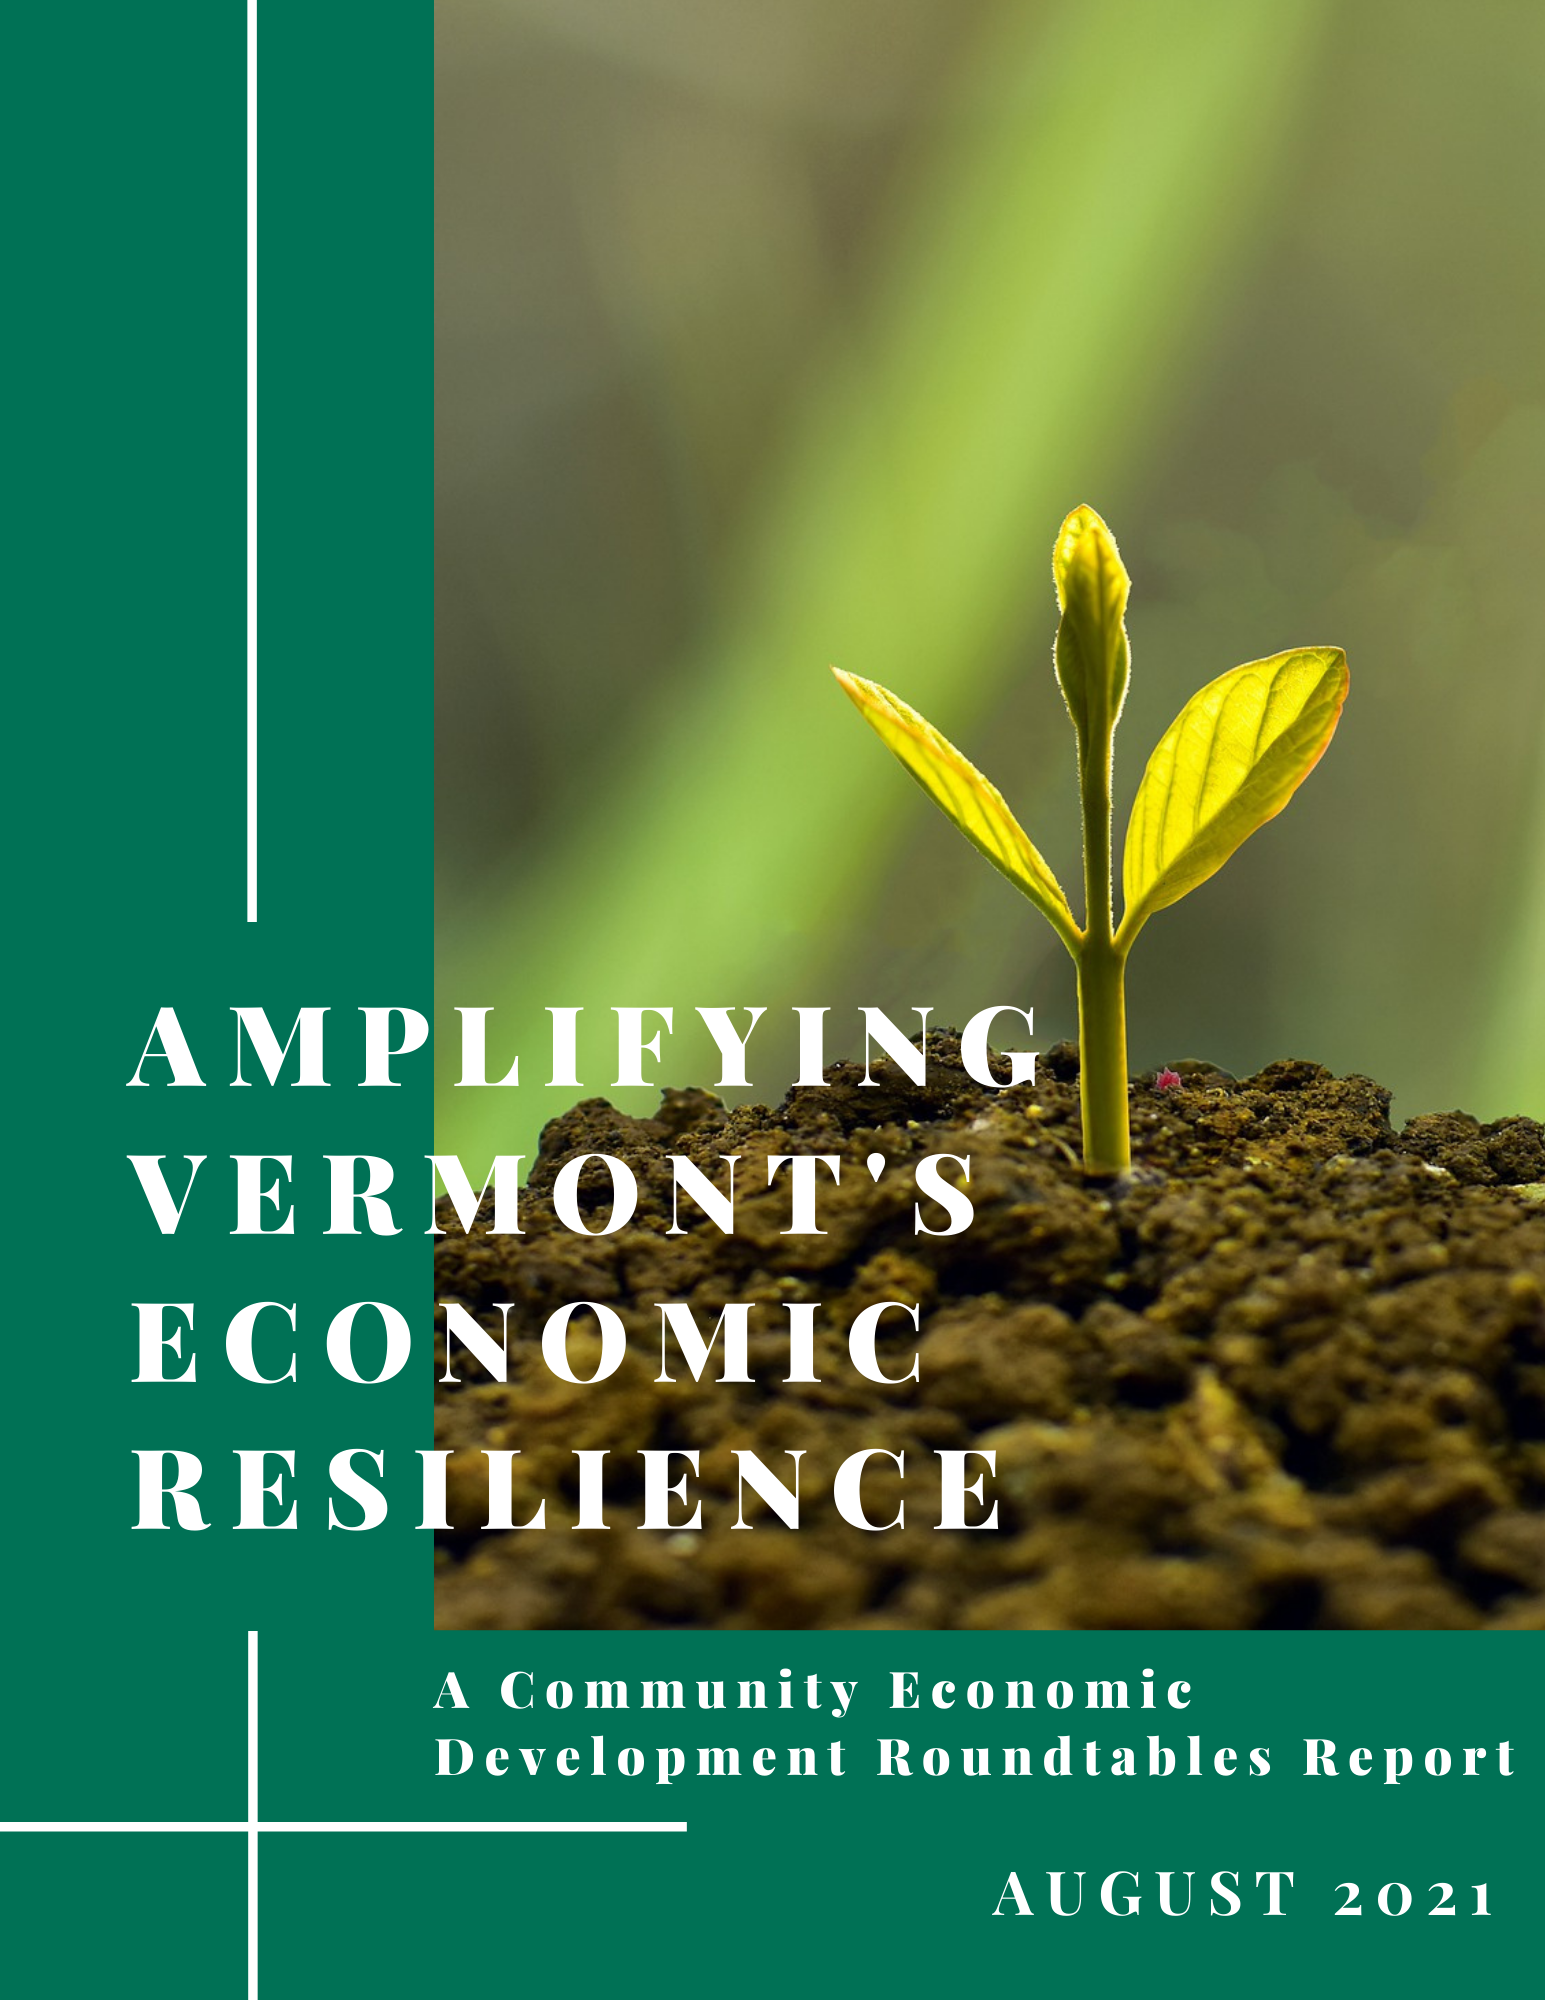 Front cover of Roundtable Report with title and a sprouting leaf image to the right